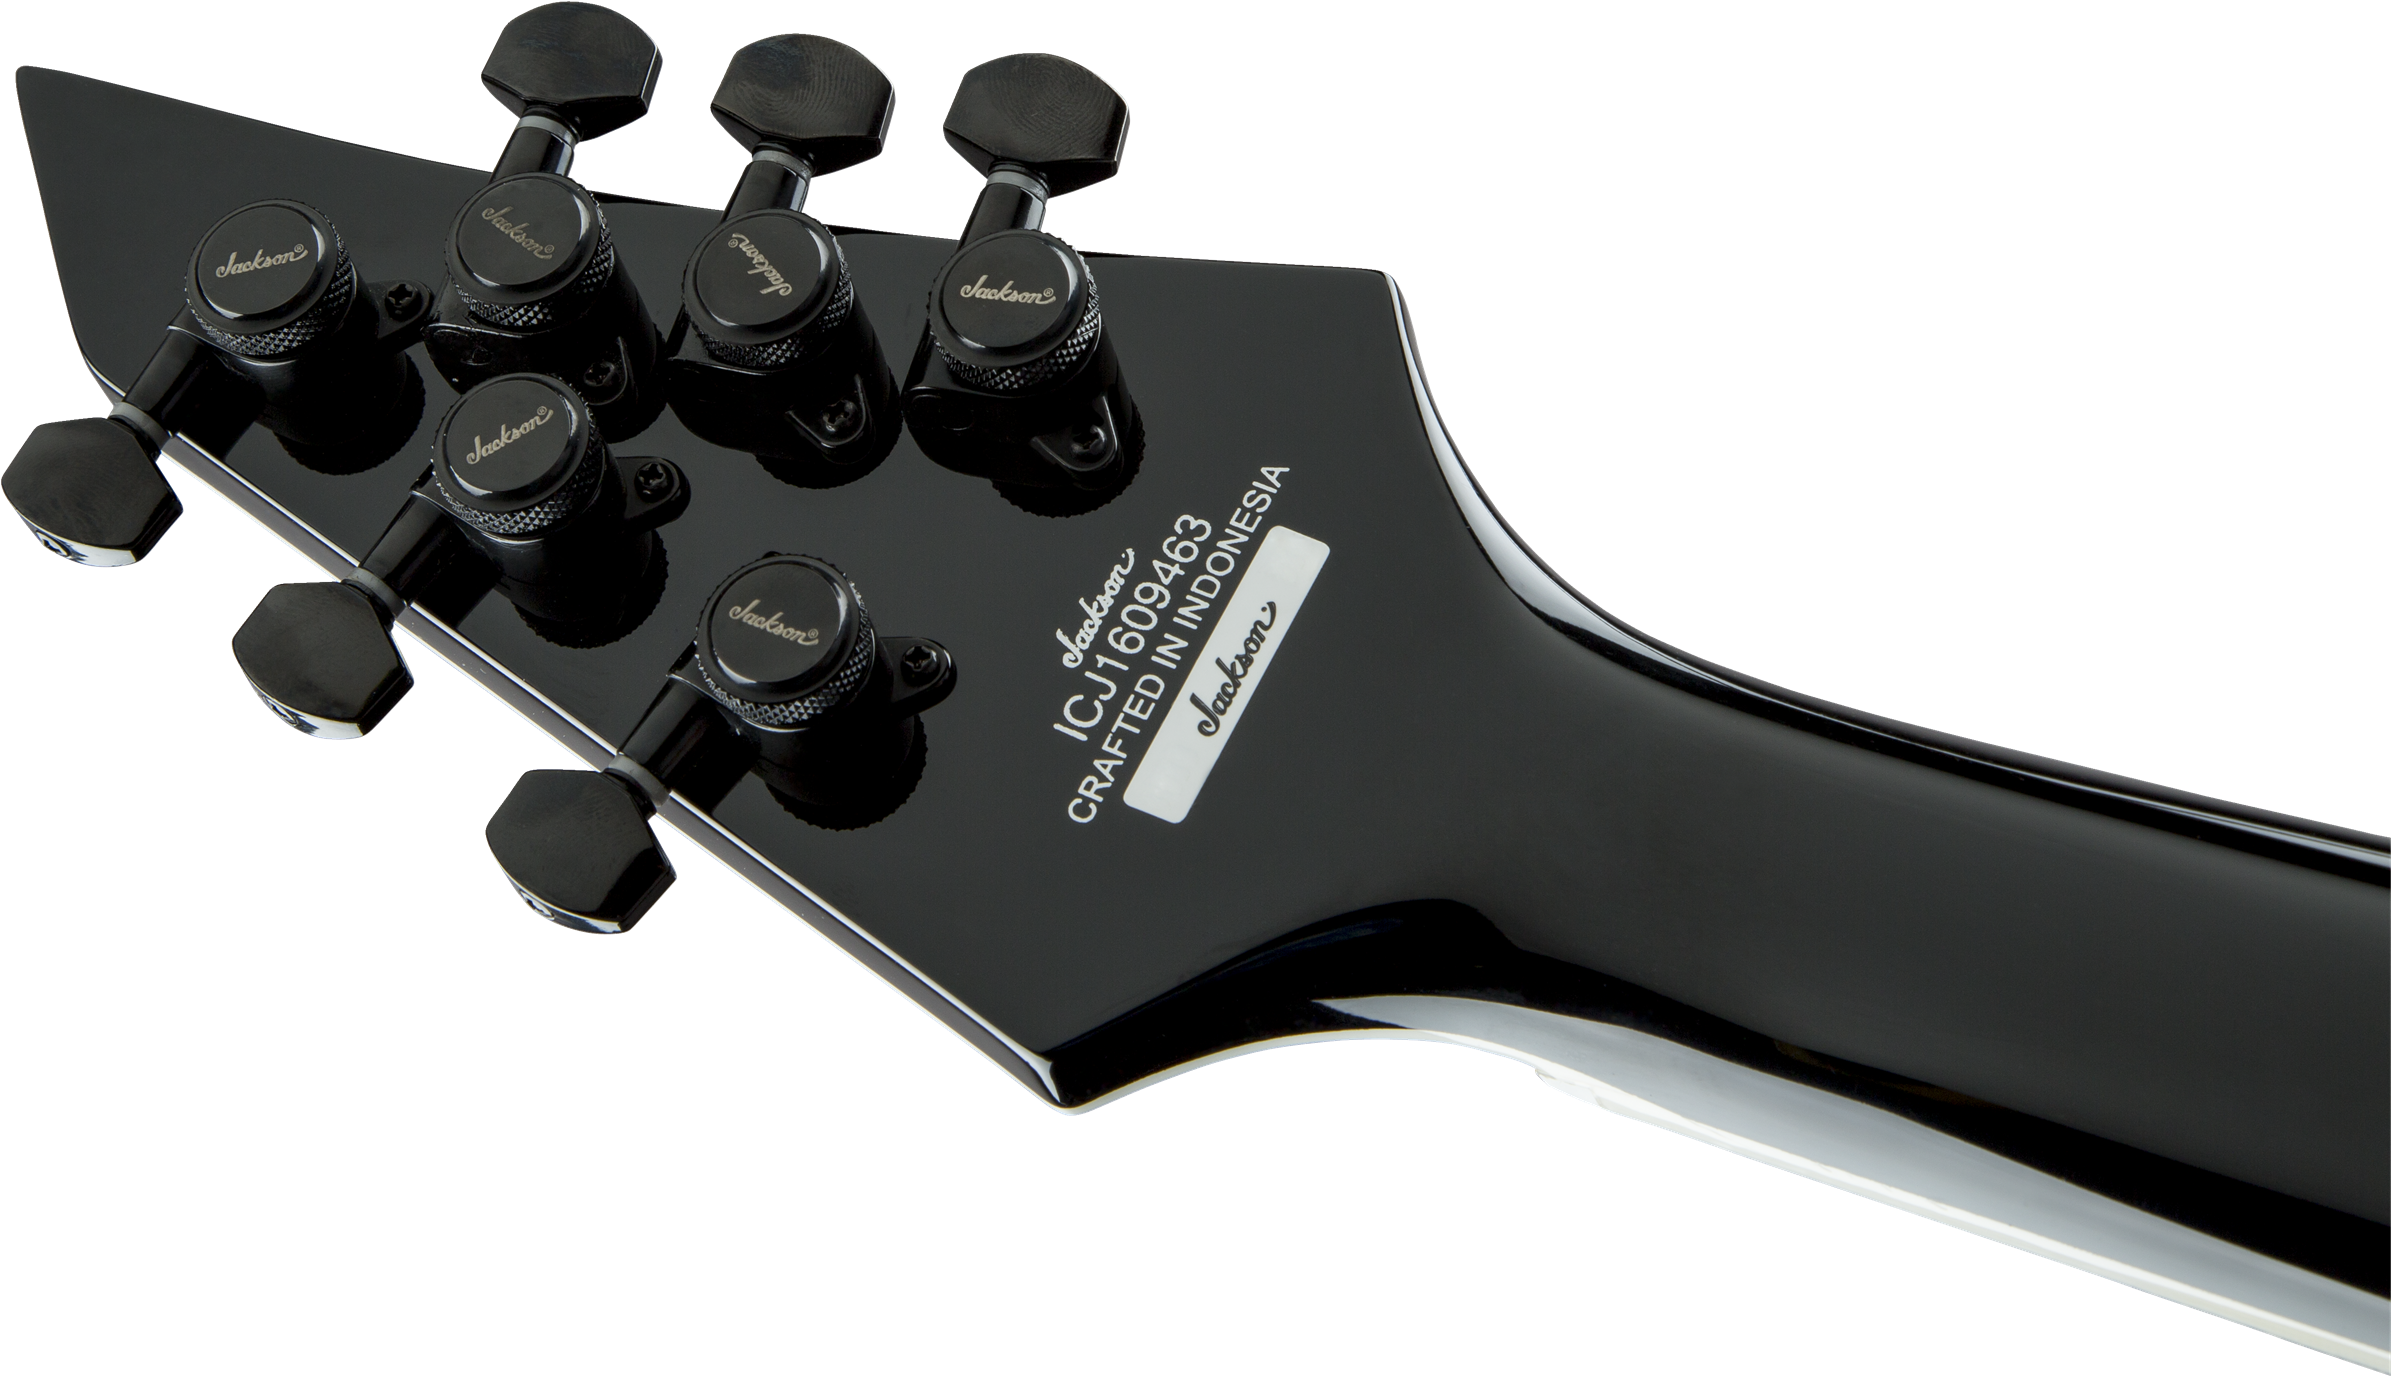 mf 1 x series signature marty friedman mf 1 rosewood fingerboard gloss black with white bevels. Black Bedroom Furniture Sets. Home Design Ideas